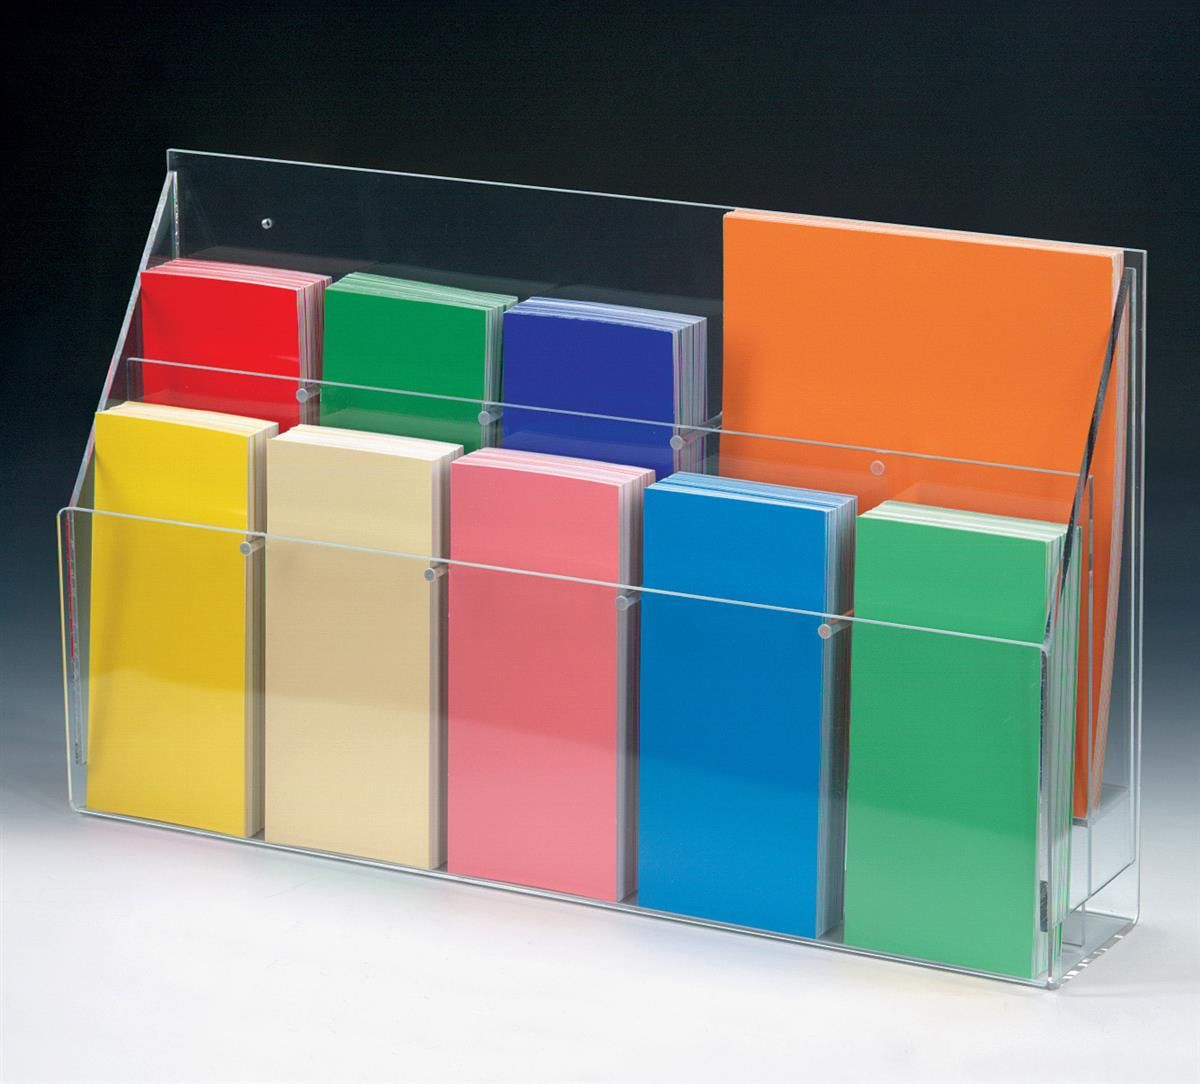 2 Tiered Acrylic Literature Holder for Table or Wall 10 Adjustable Pockets Clear